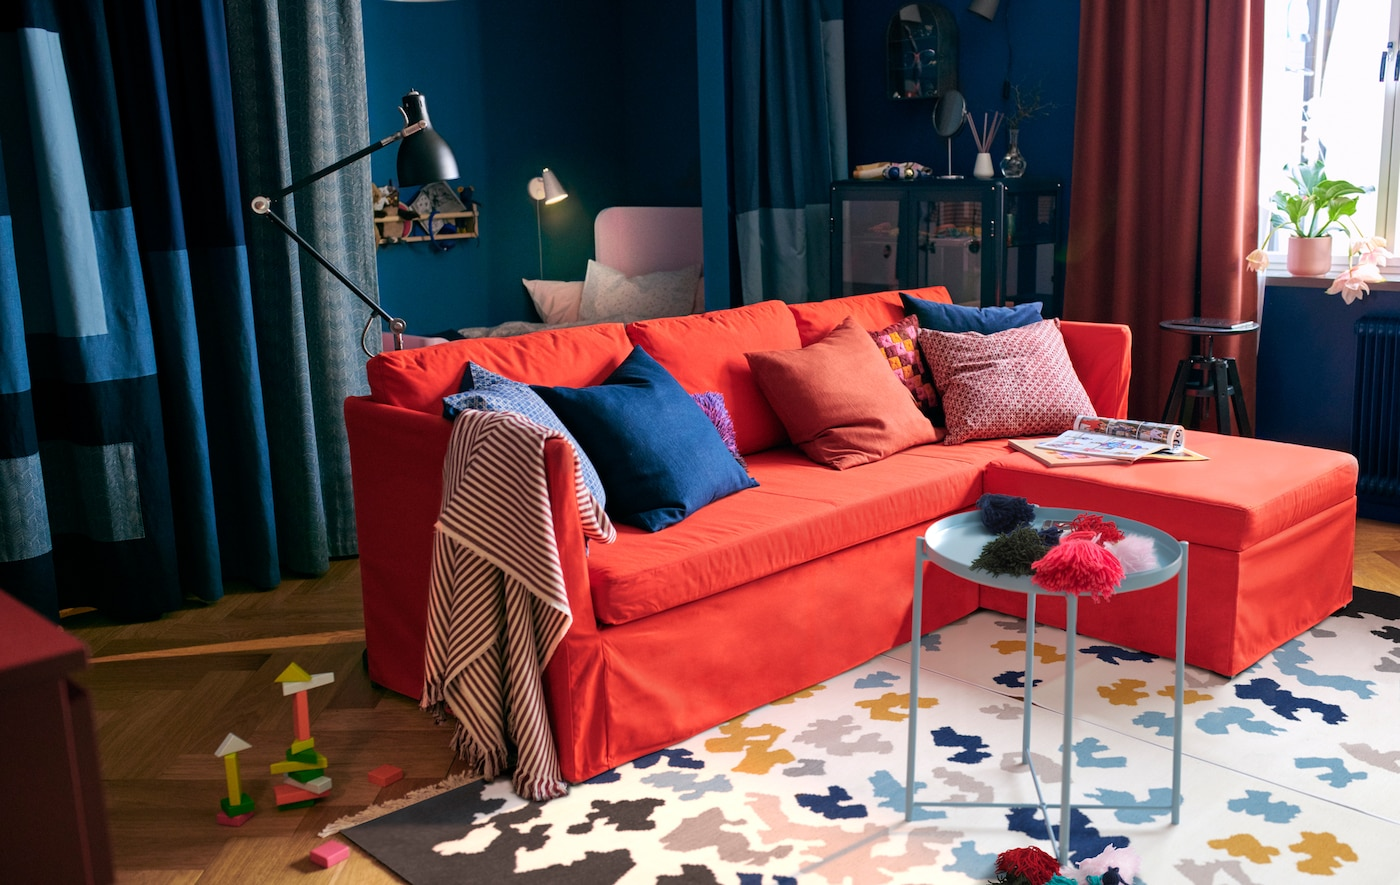 Living small? Place a sofa-bed in the middle of the room for more wall storage space. Try IKEA BRÅTHULT red-orange sofa bed!